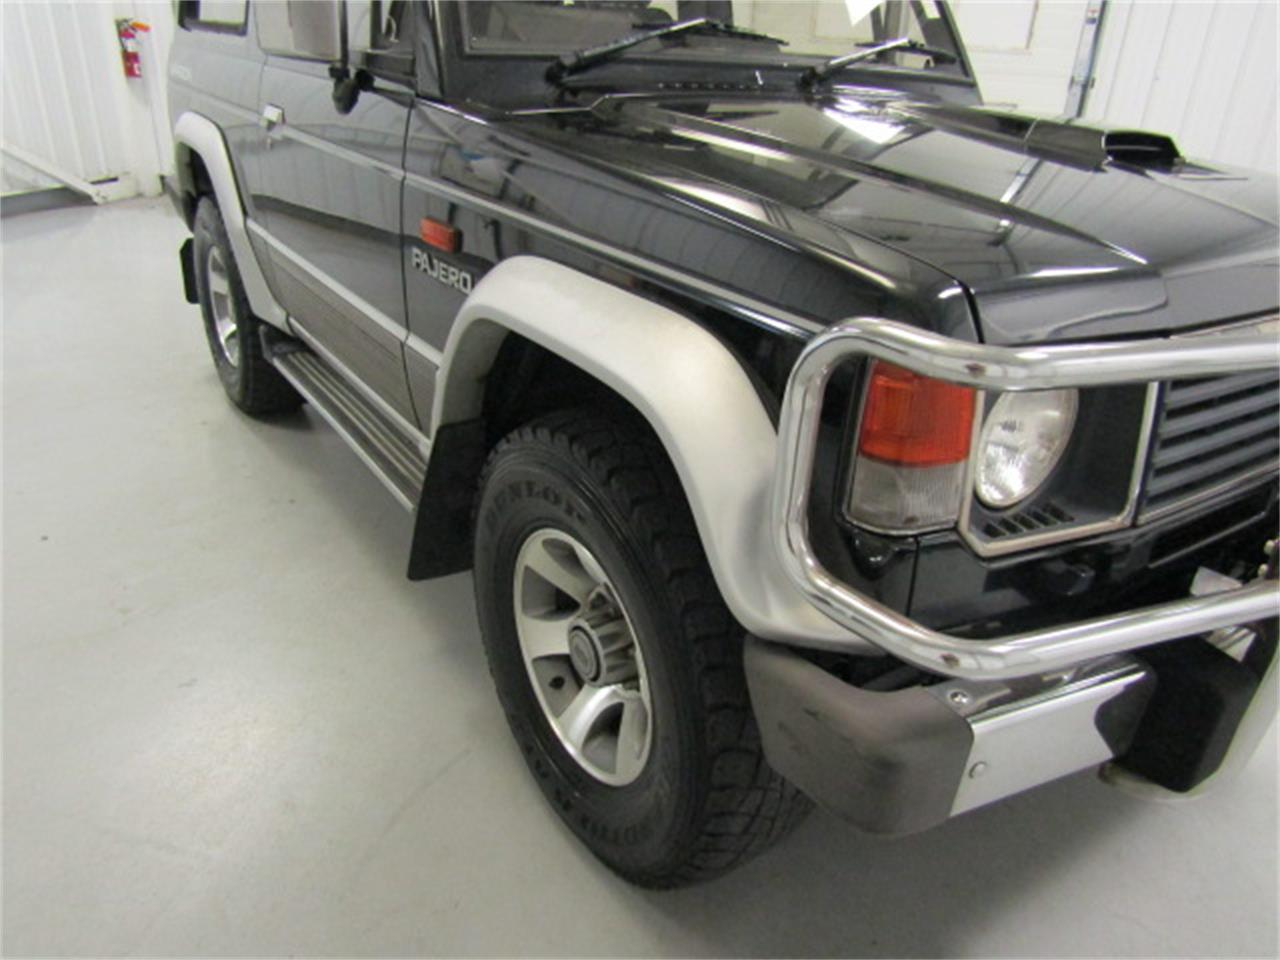 Large Picture of 1990 Mitsubishi Pajero located in Christiansburg Virginia - $7,999.00 Offered by Duncan Imports & Classic Cars - KXIX